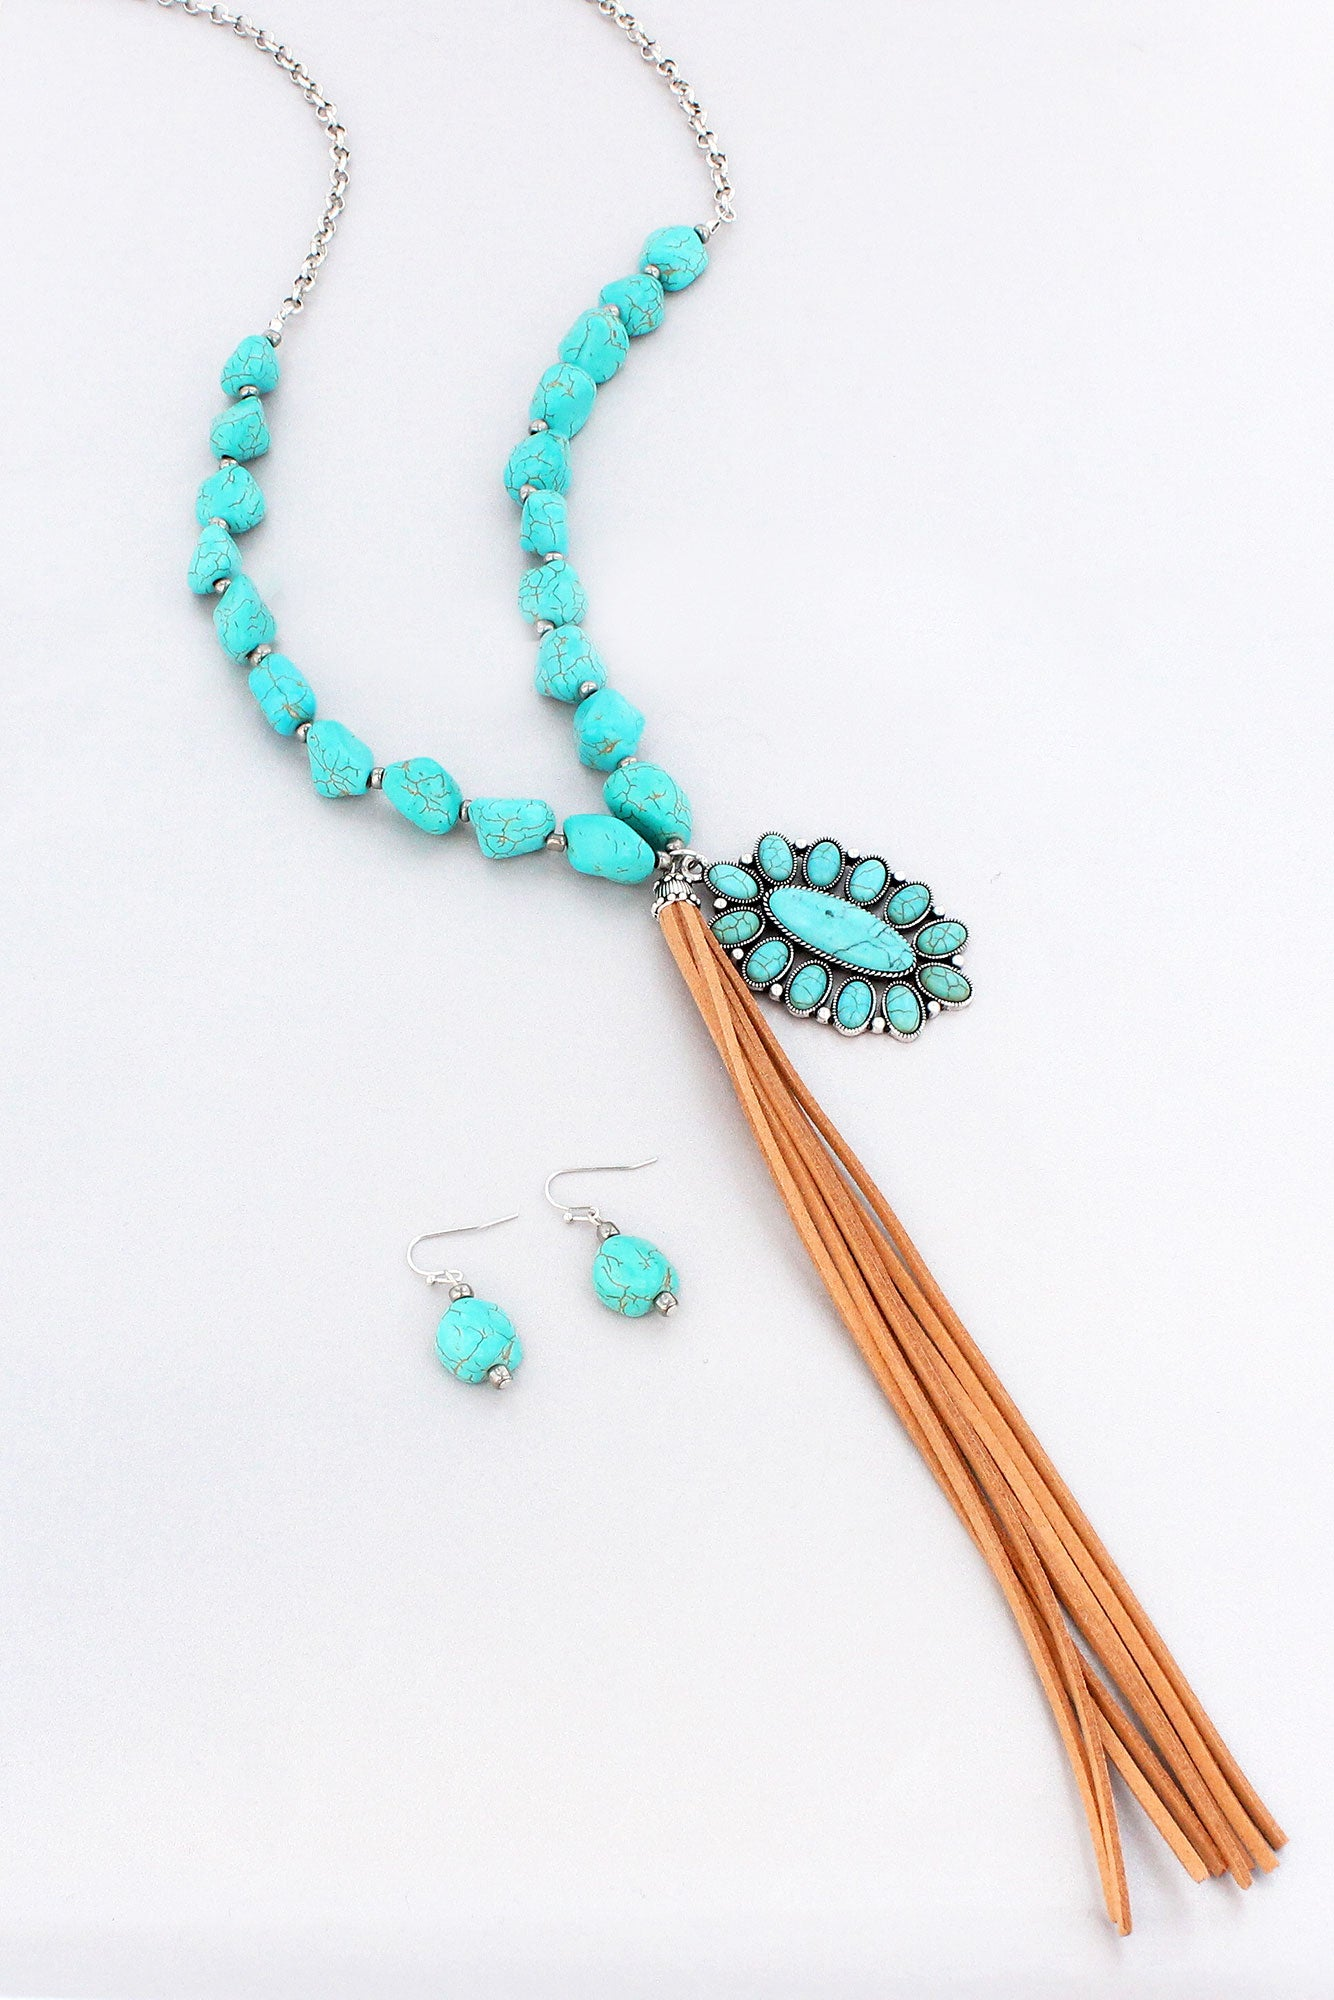 Turquoise Beaded Burnished Silvertone Concho Tassel Necklace And Earring Set